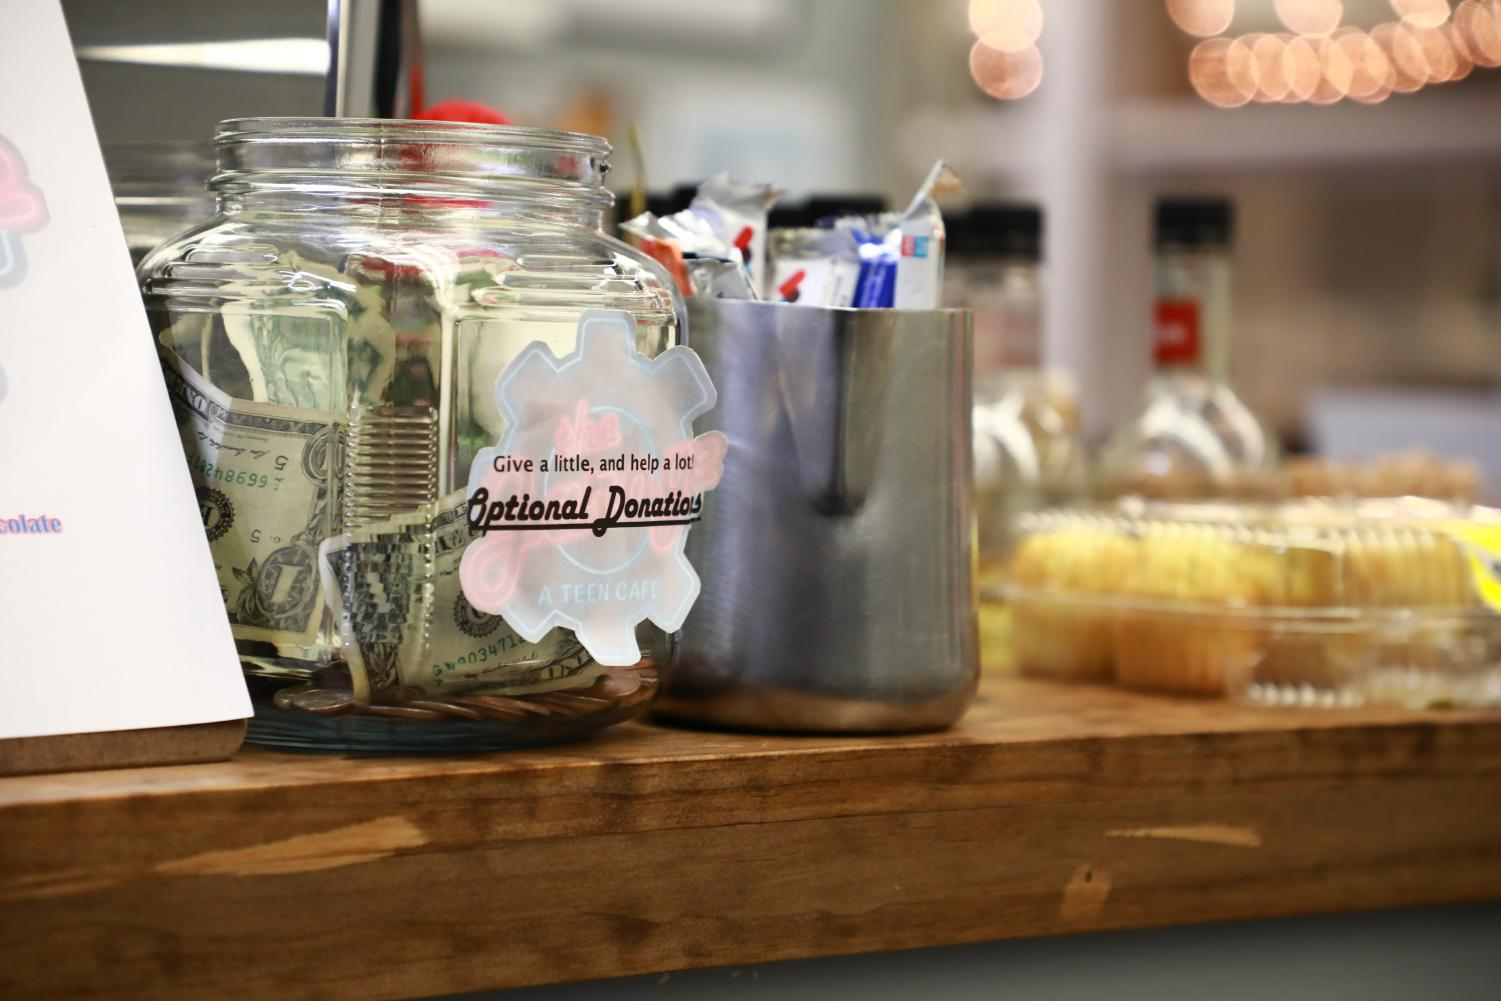 A LITTLE GRATITUDE. At The Garage, a free teen café in Issaquah, accepts optional donations that allow patrons to tip only if they want to. Restaurants with an optional tip allow customers to reward exceptional service but do not make servers reliant on tips for their income.